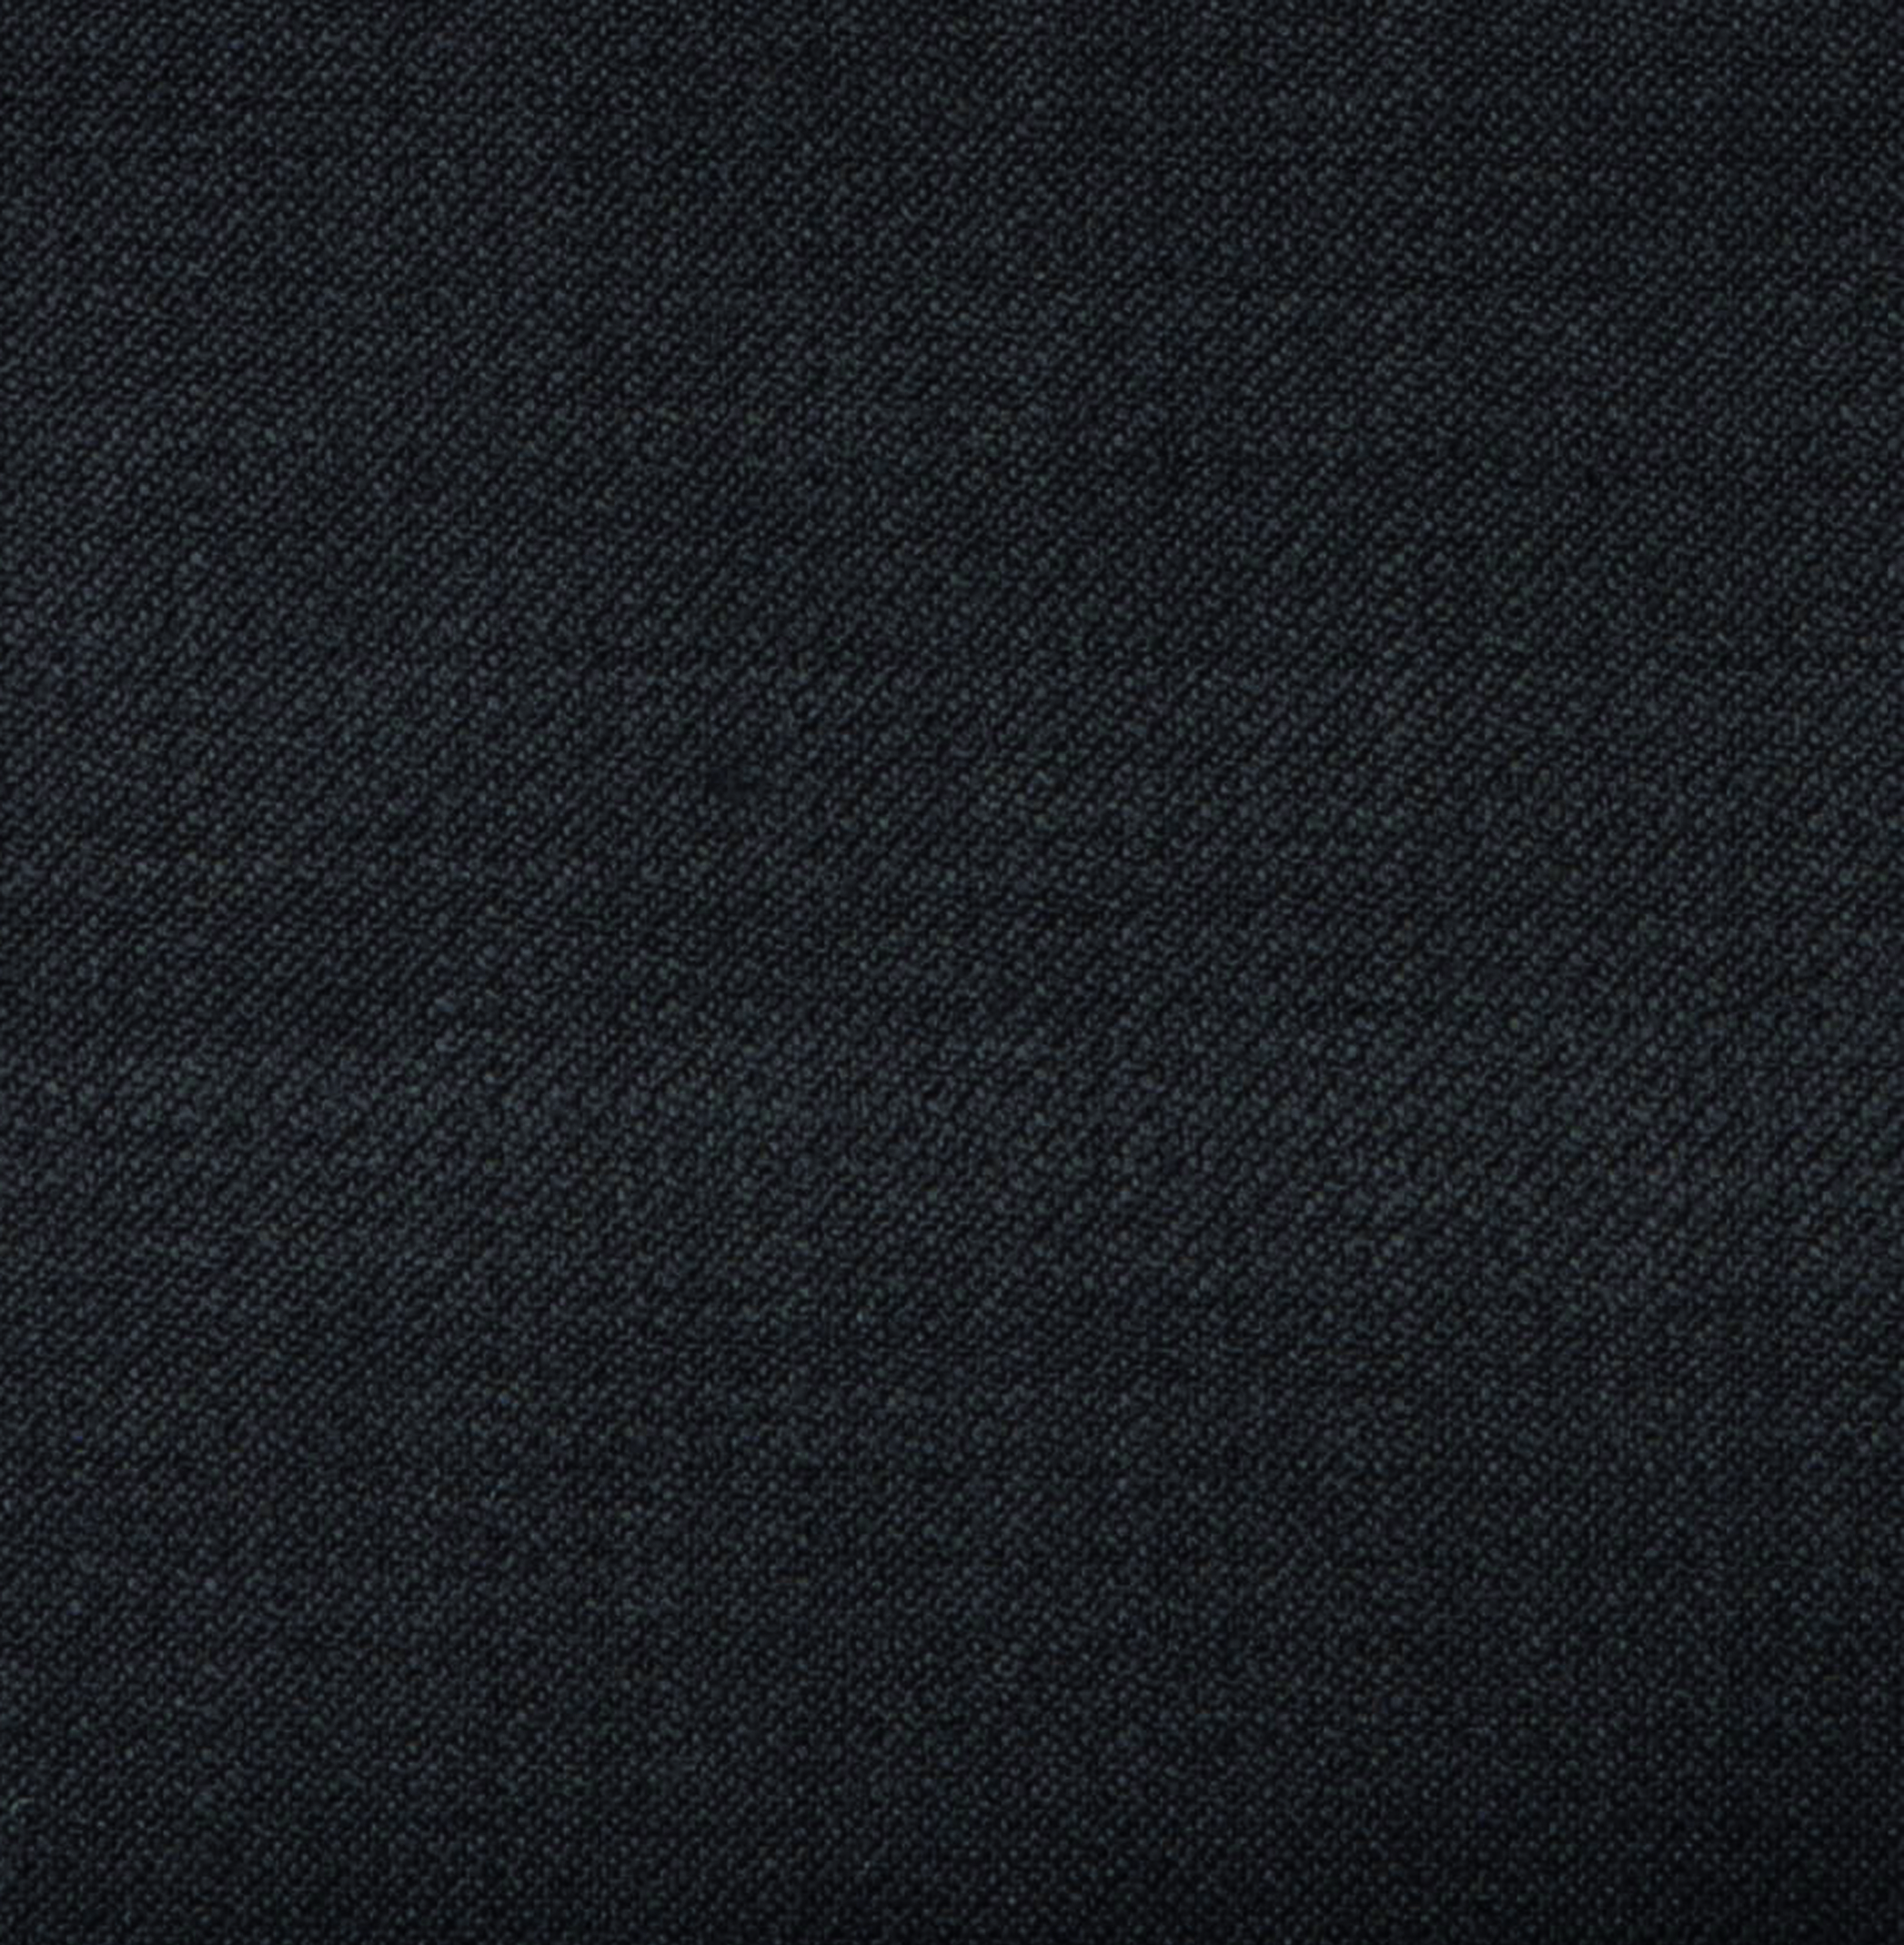 Buy tailor made shirts online - Luxurious Pure New Wool - Dark Brown with lining